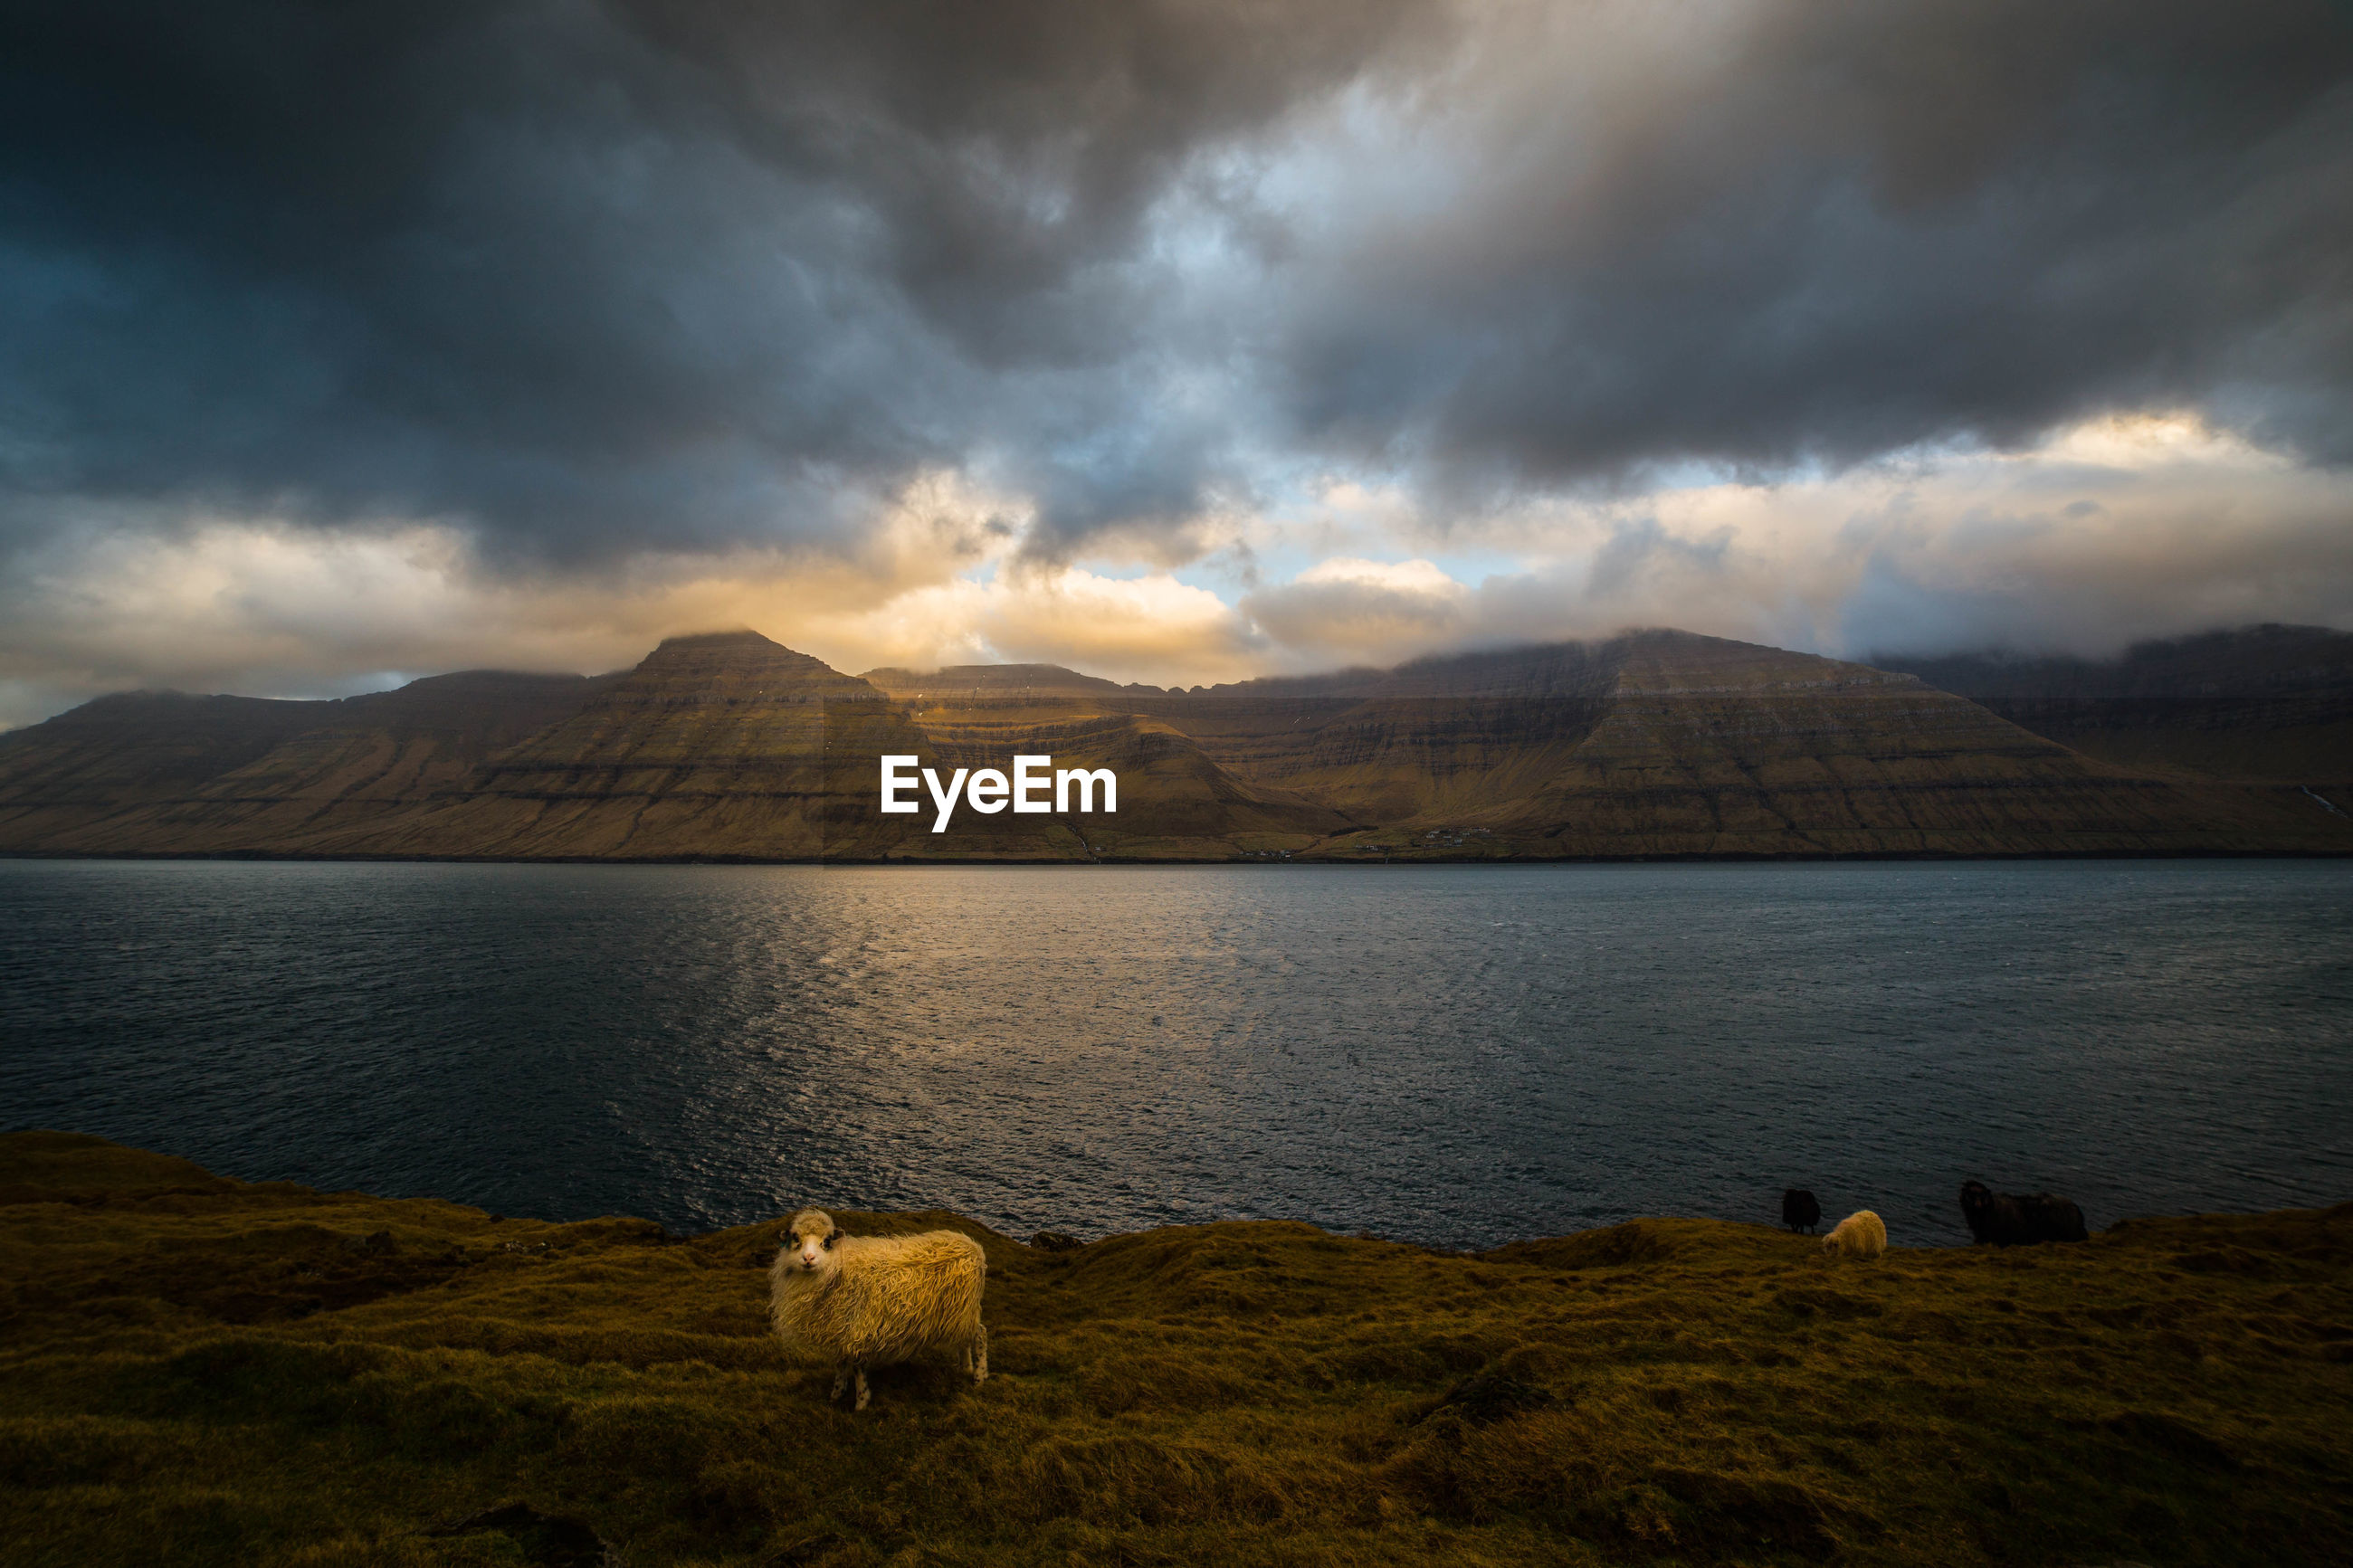 Sheep standing by lake at dusk